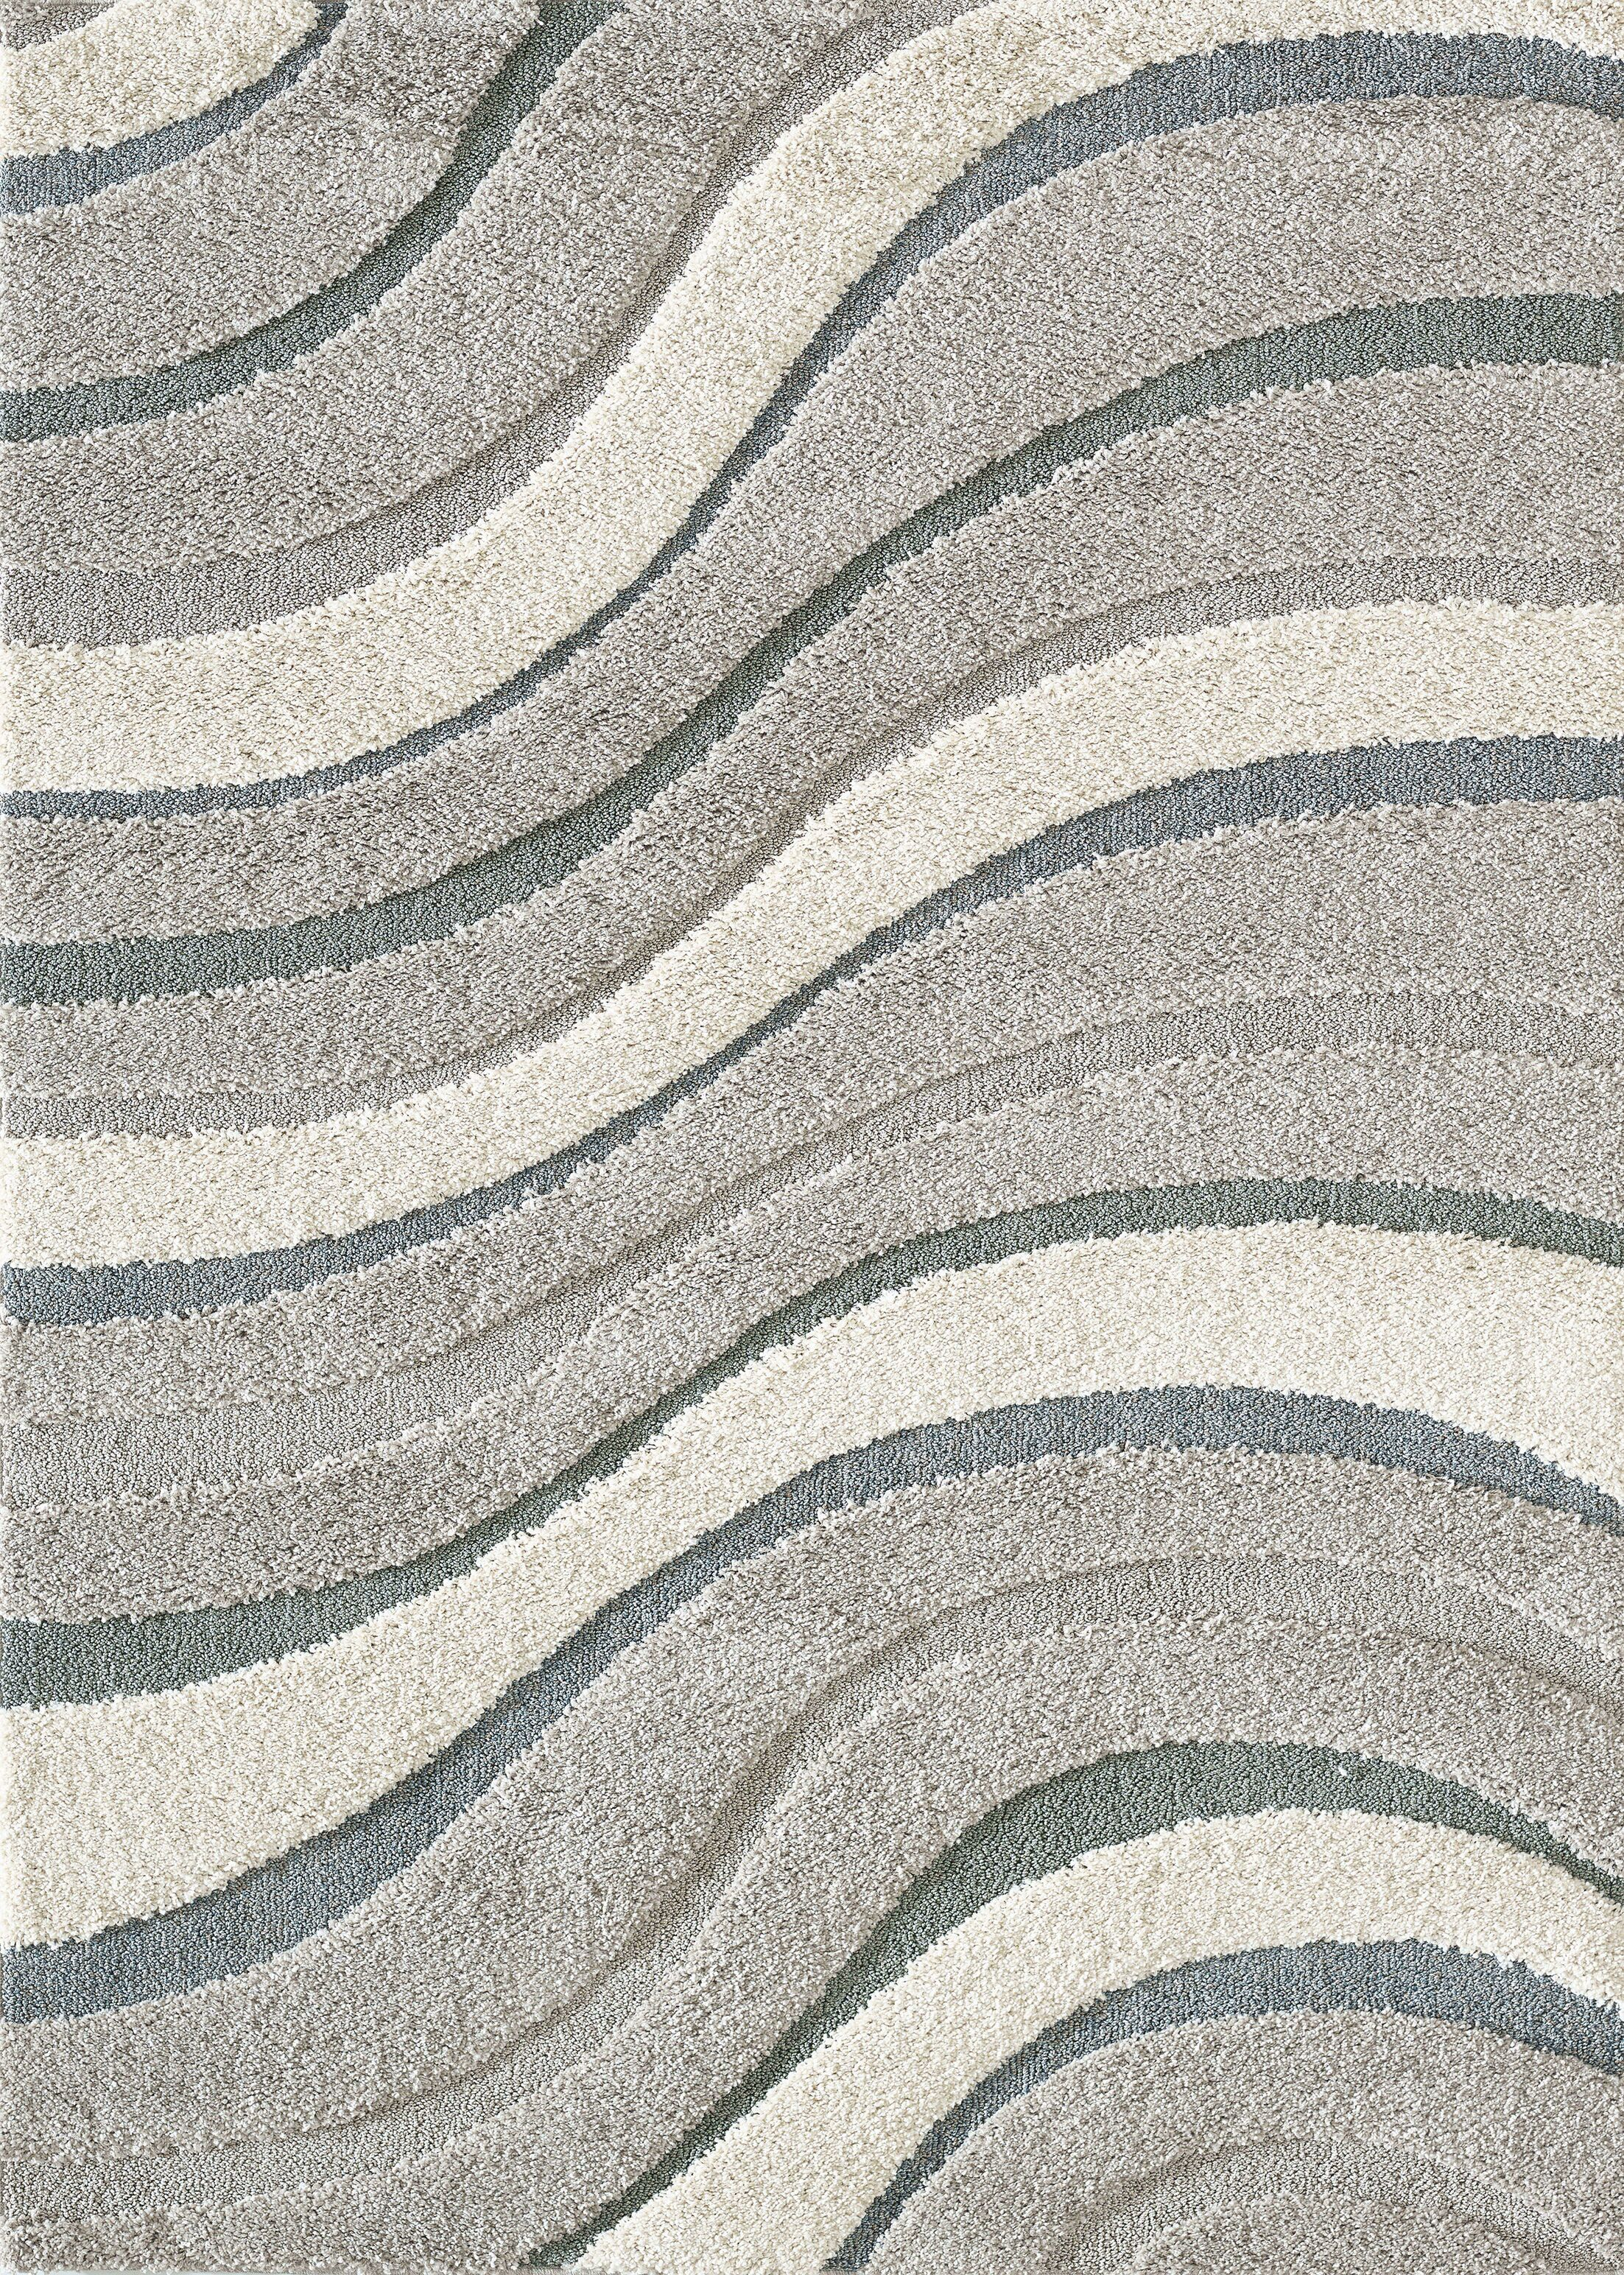 Kevin Waves Gray Area Rug Rug Size: Rectangle 7'10